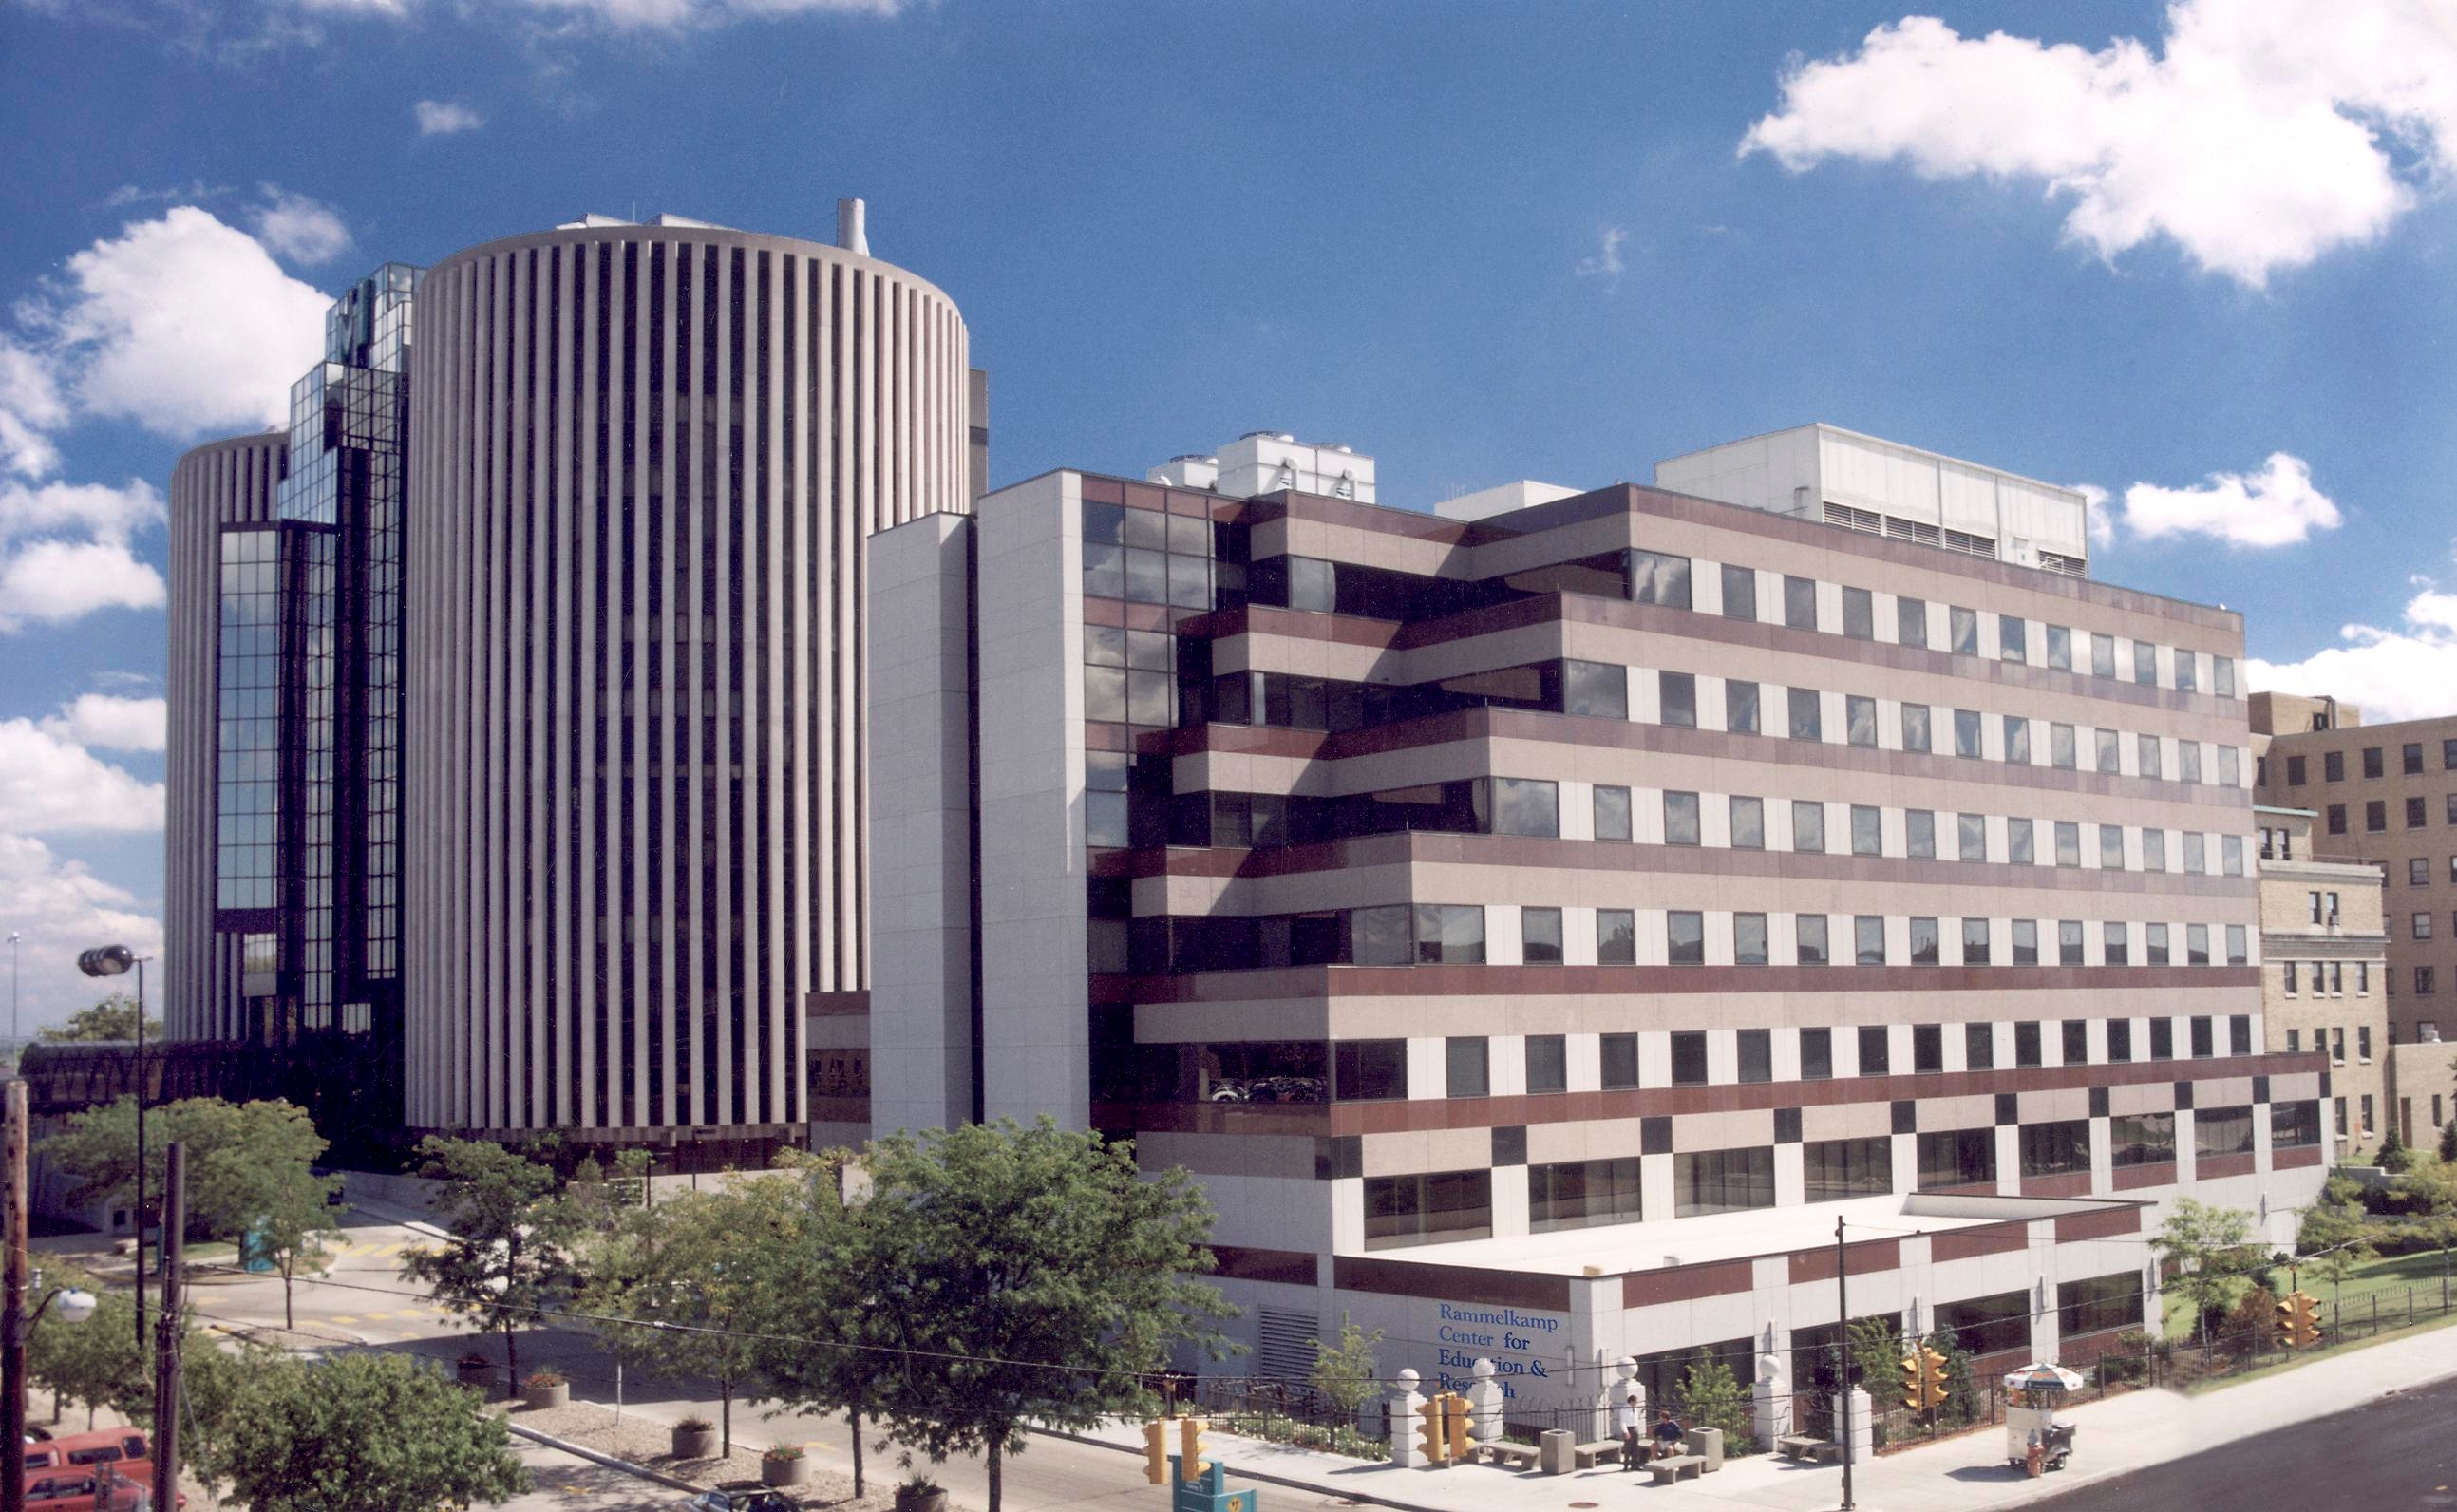 MetroHealth Main Campus